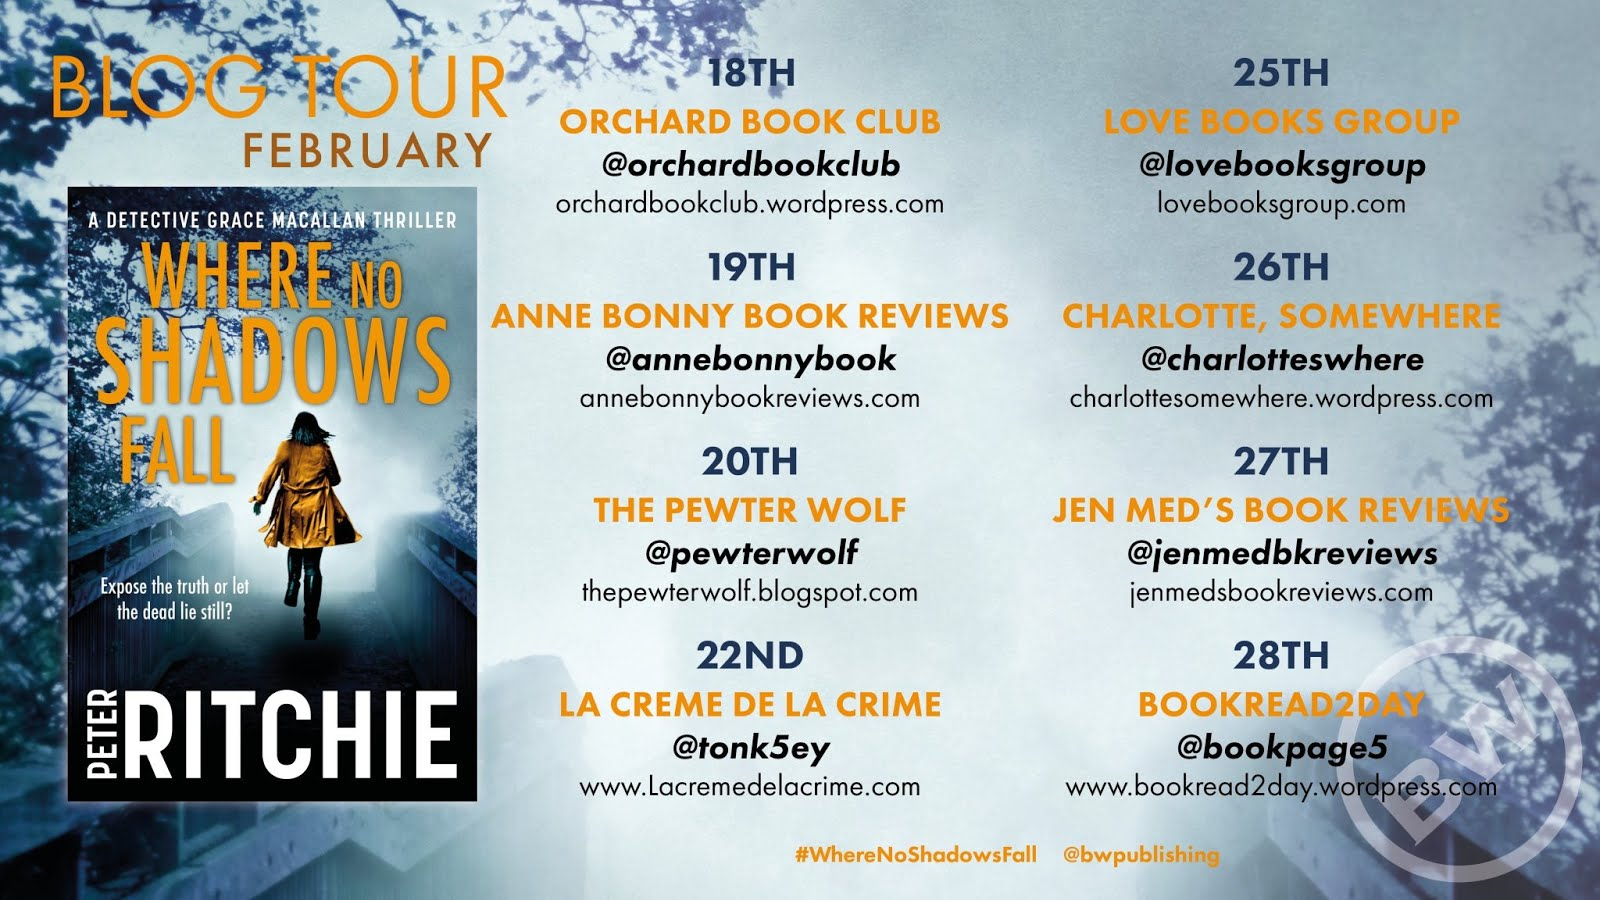 Where No Shadow Fall Blog Tour